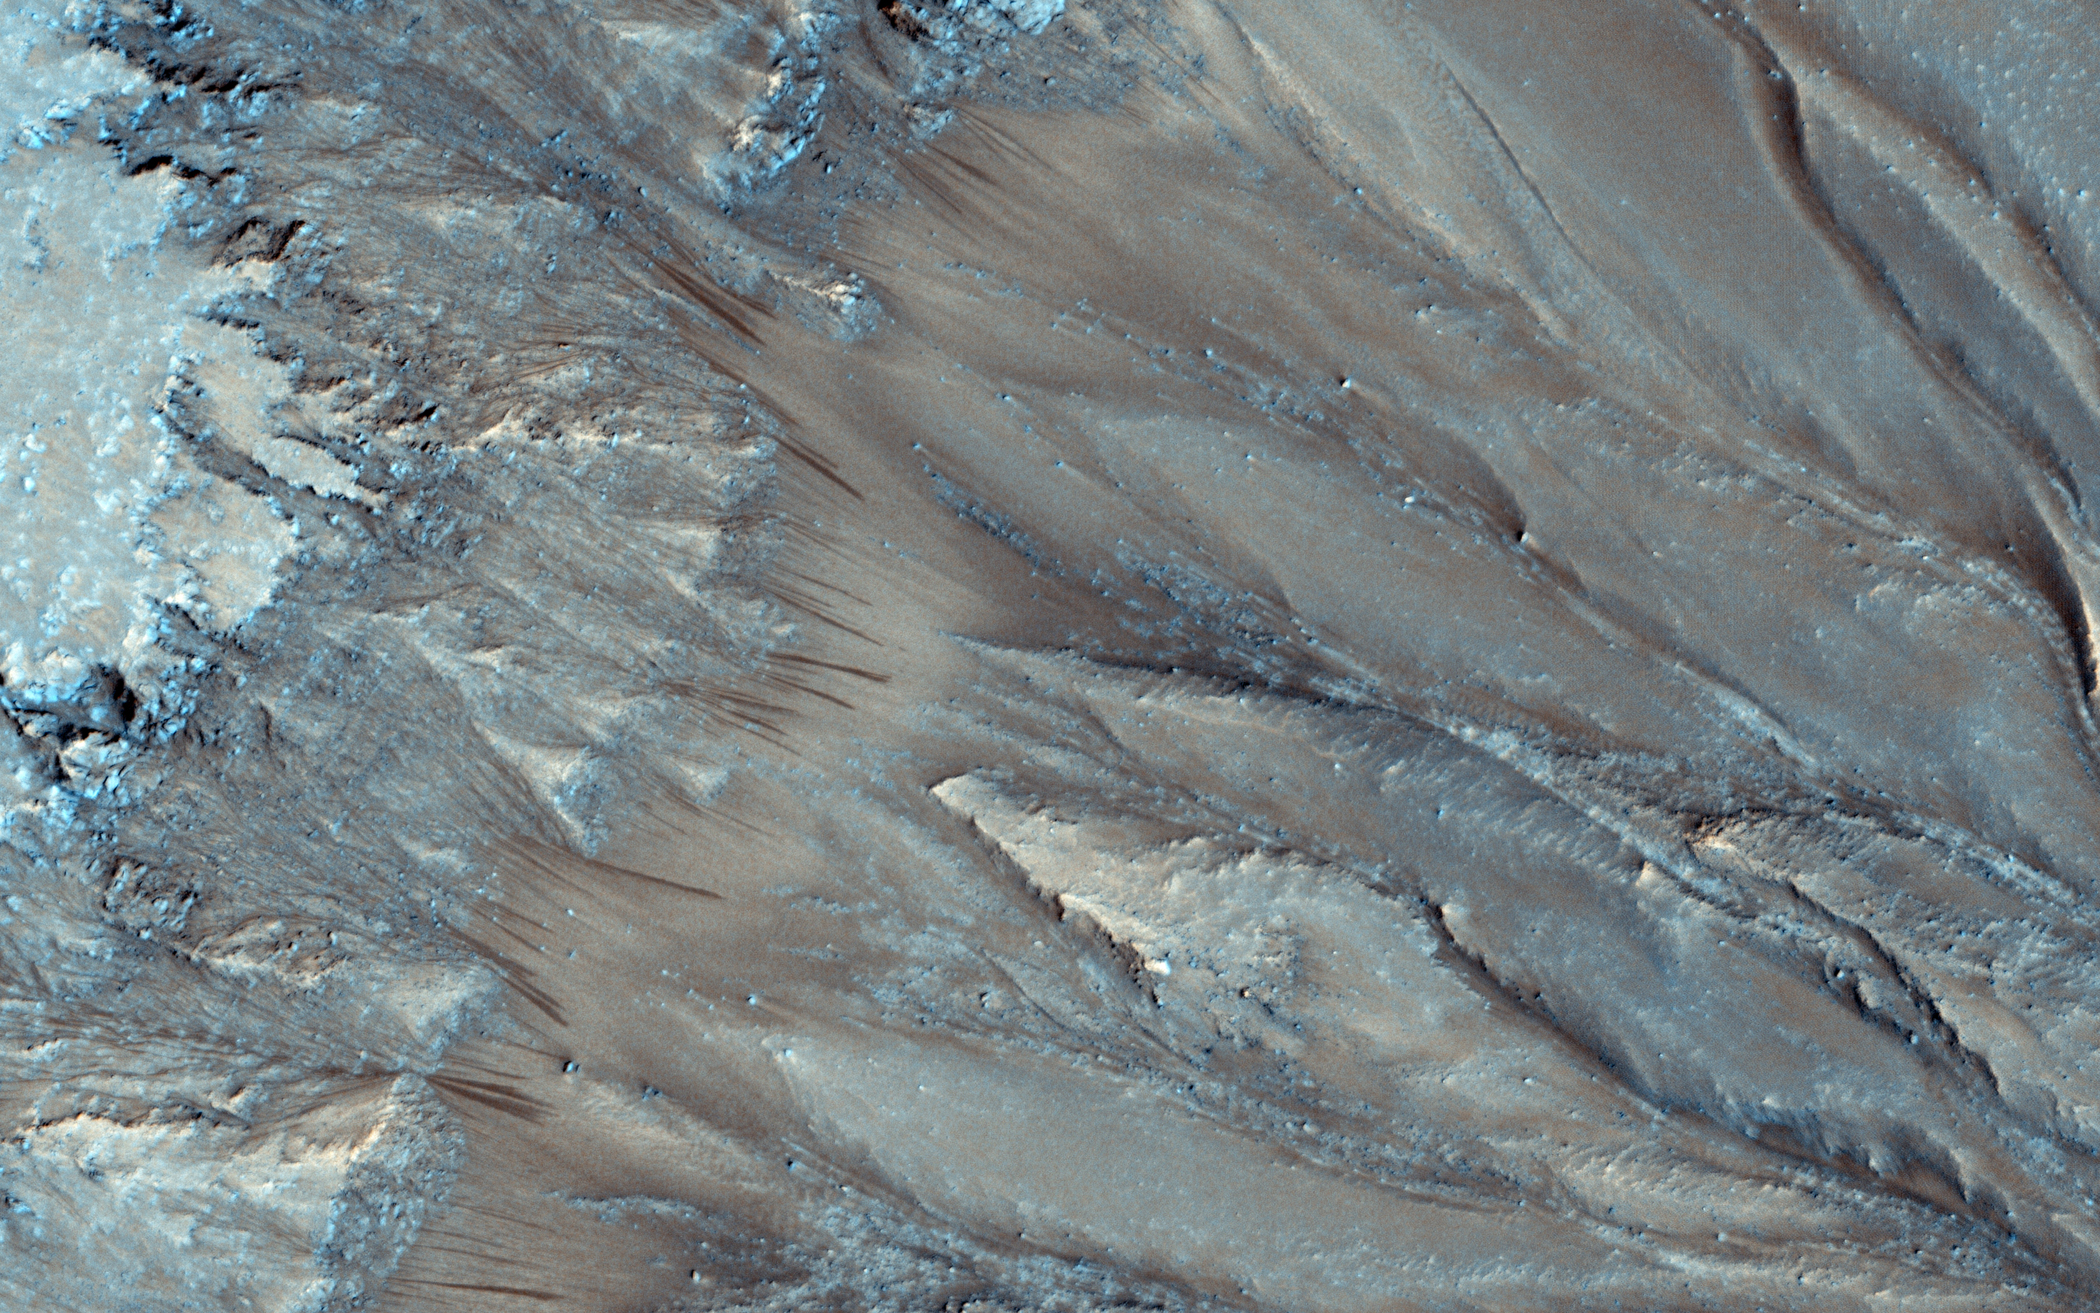 Seasonal flows on Palikir Crater, a warm Martian slopes, that may be caused by the flow of salty water on Mars. Acquired on March 15, 2013